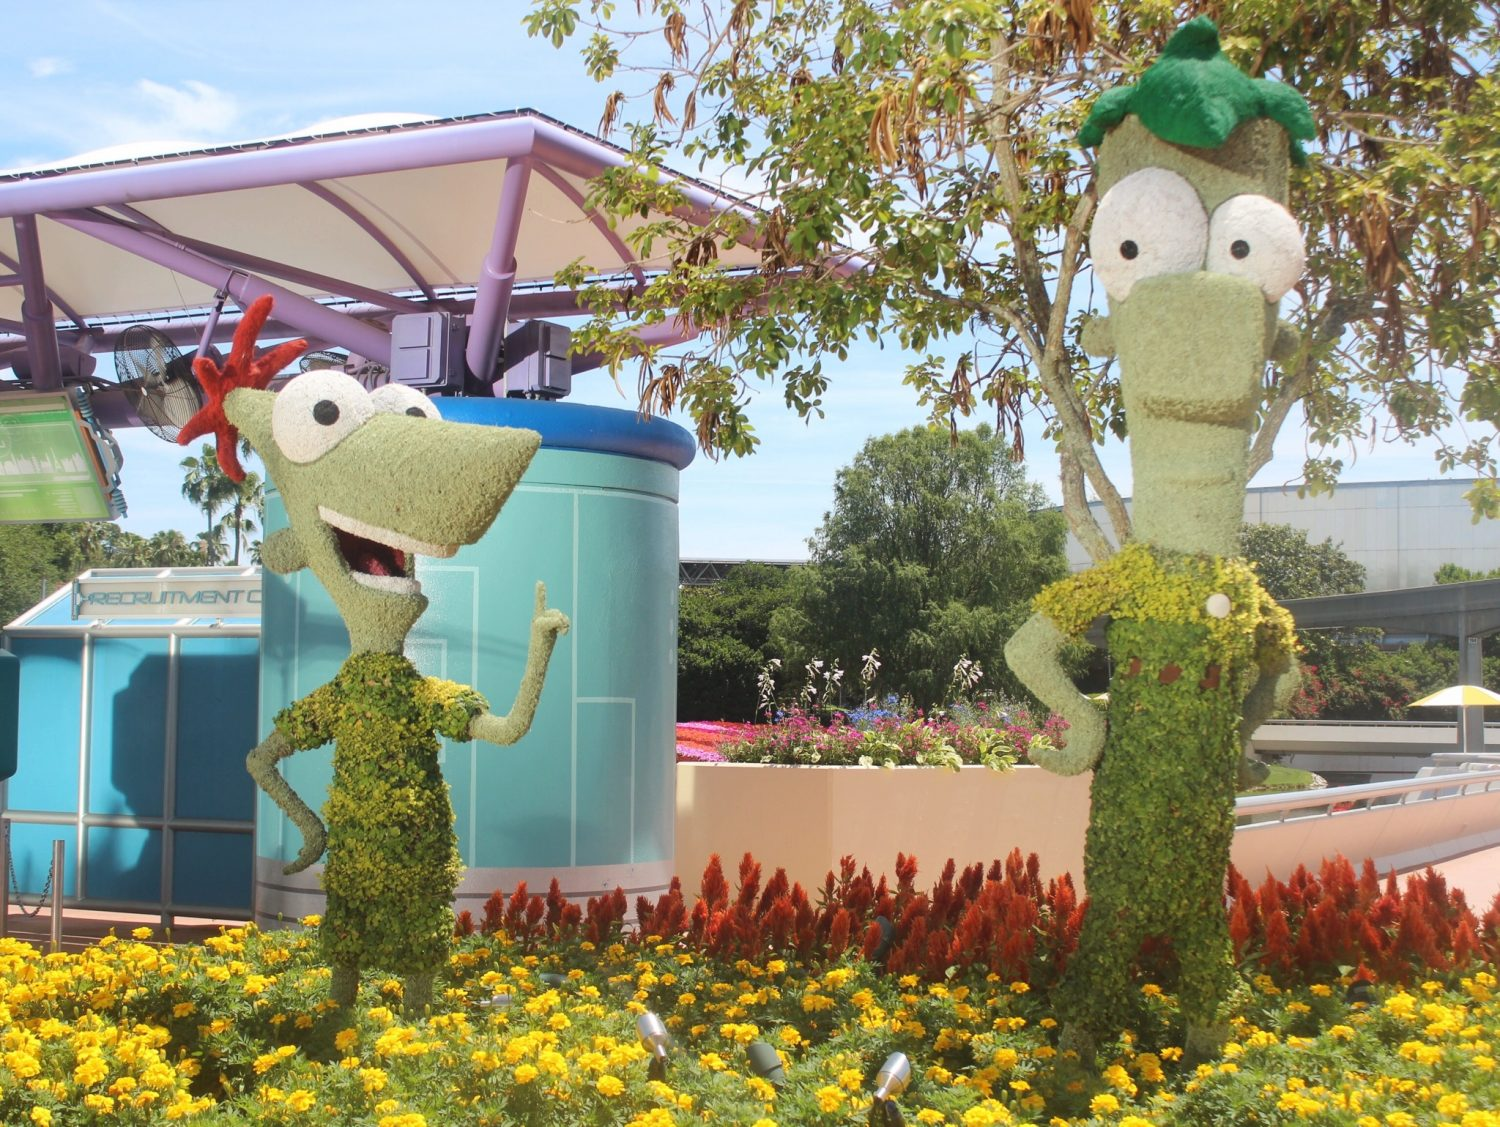 Epcot International Flower and Garden Festival Phineas and Ferb